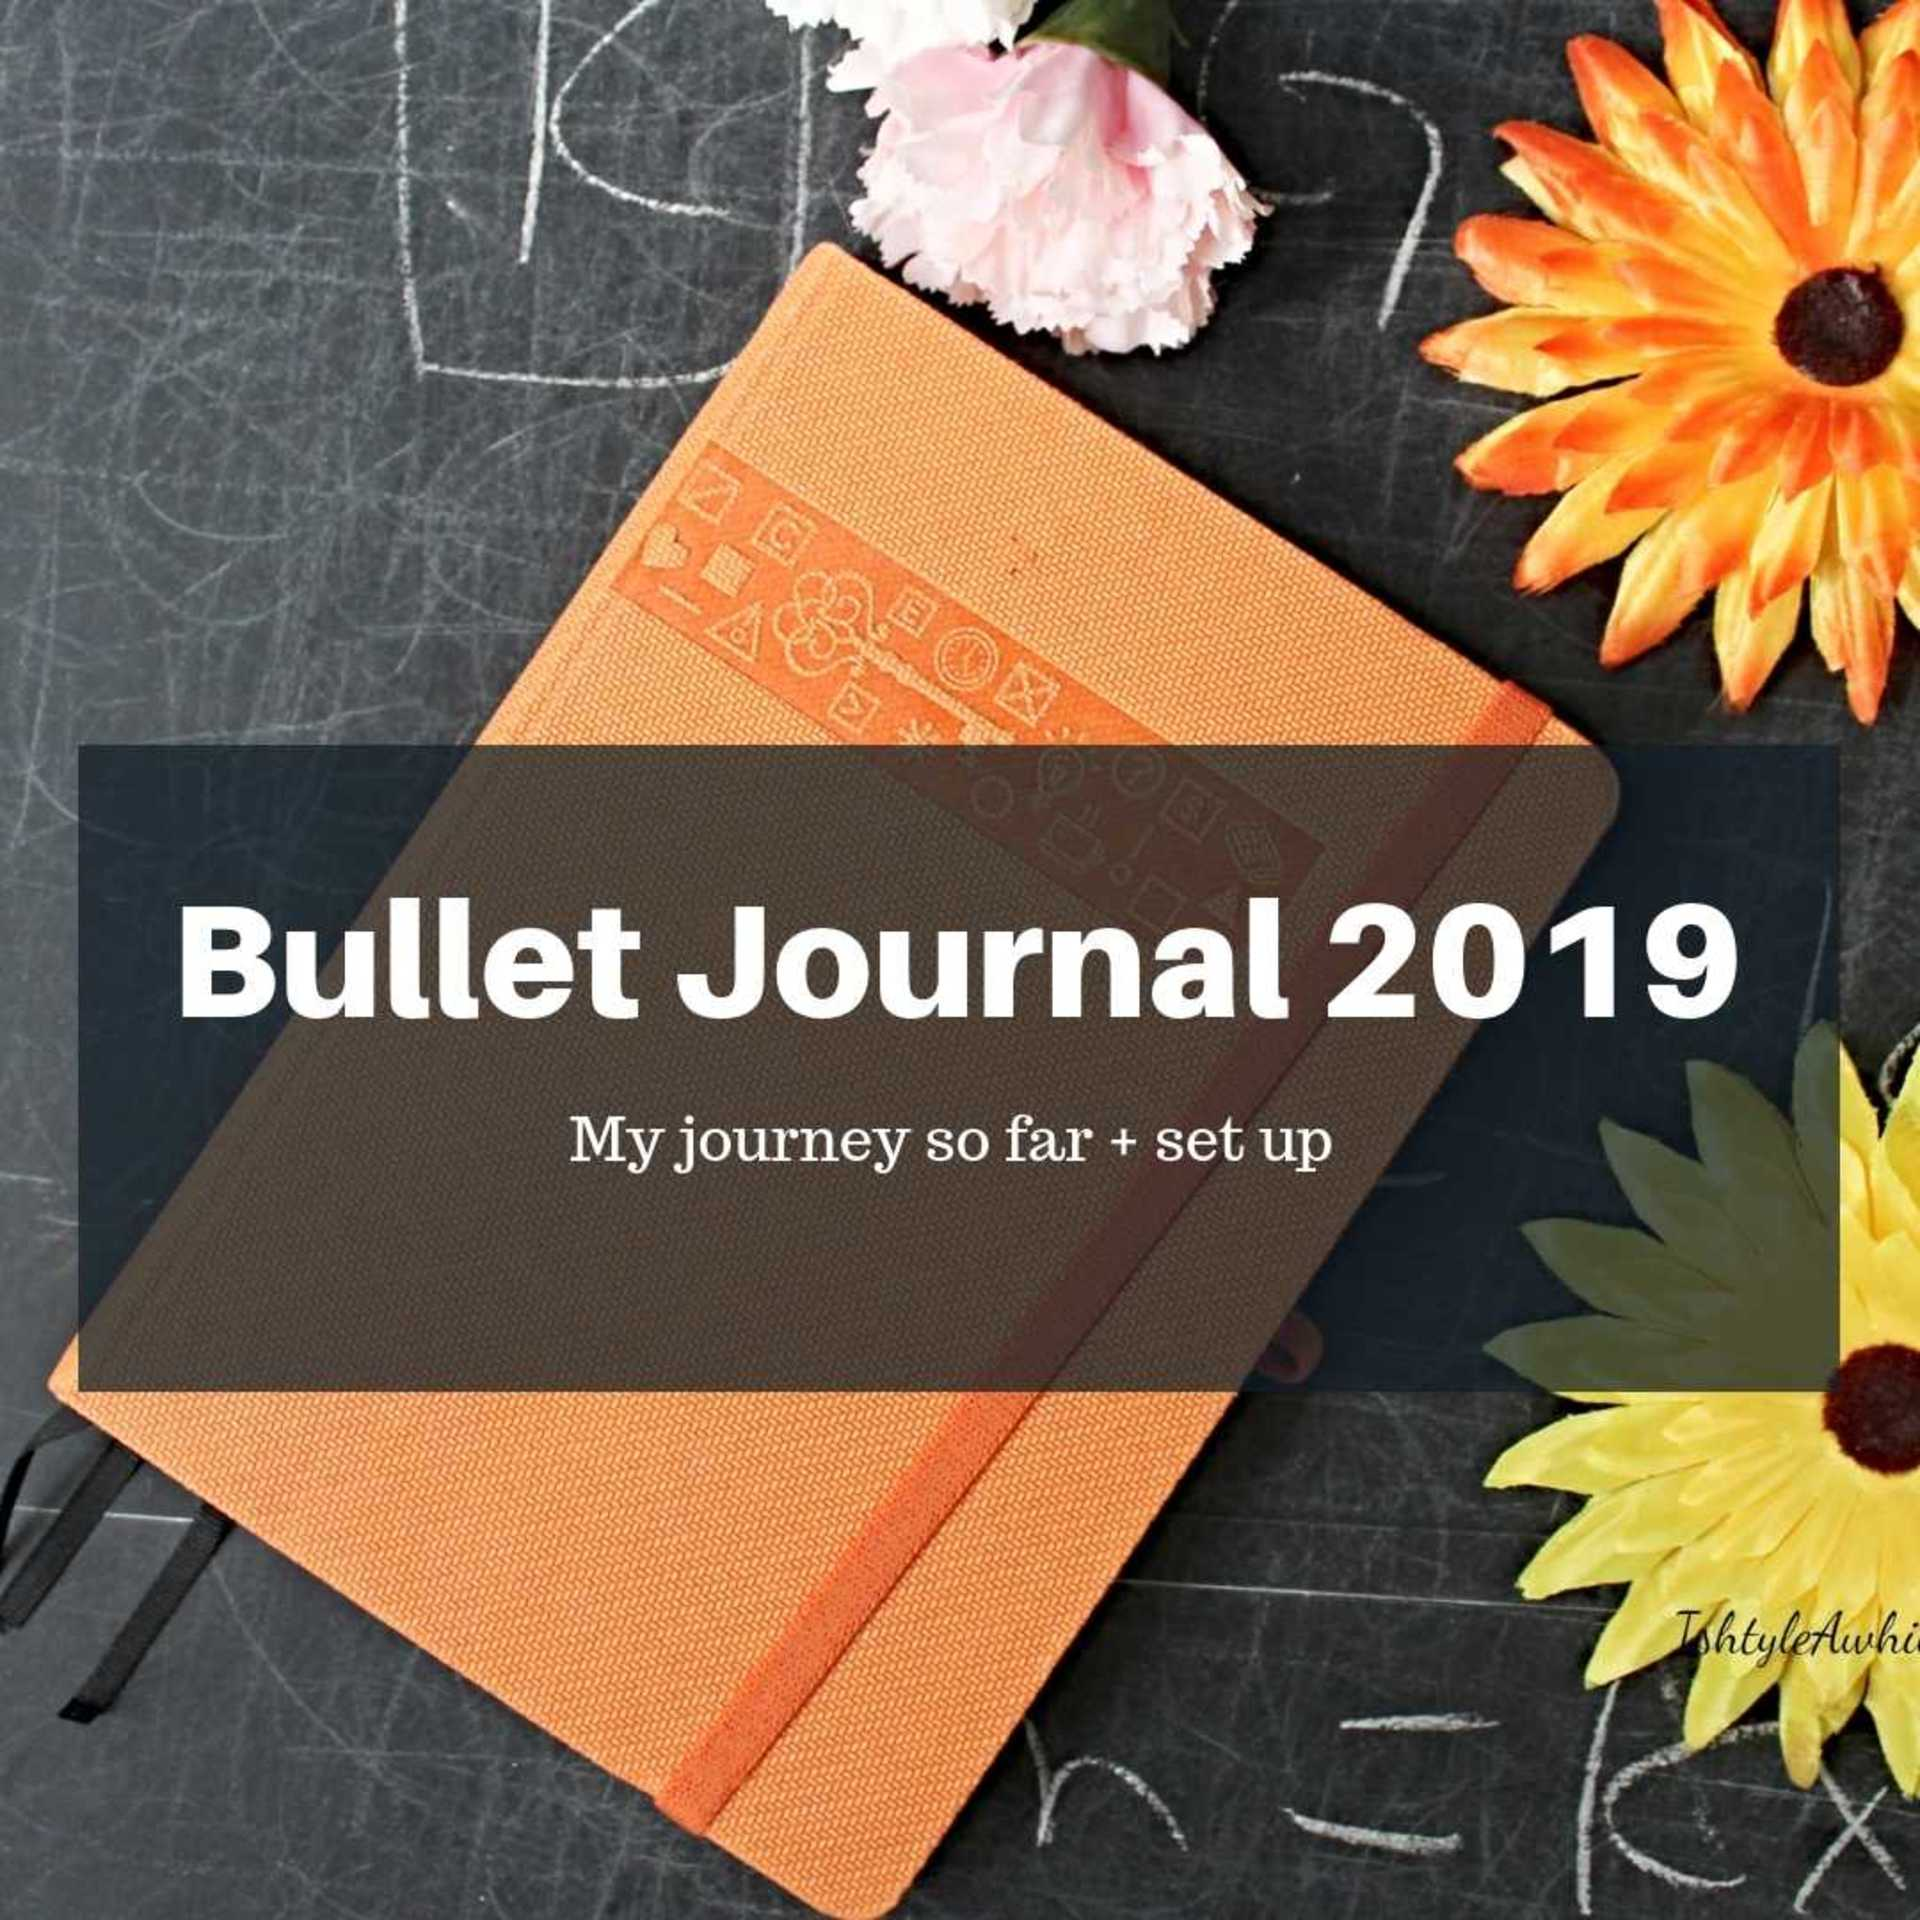 Bullet Journal 2019 image